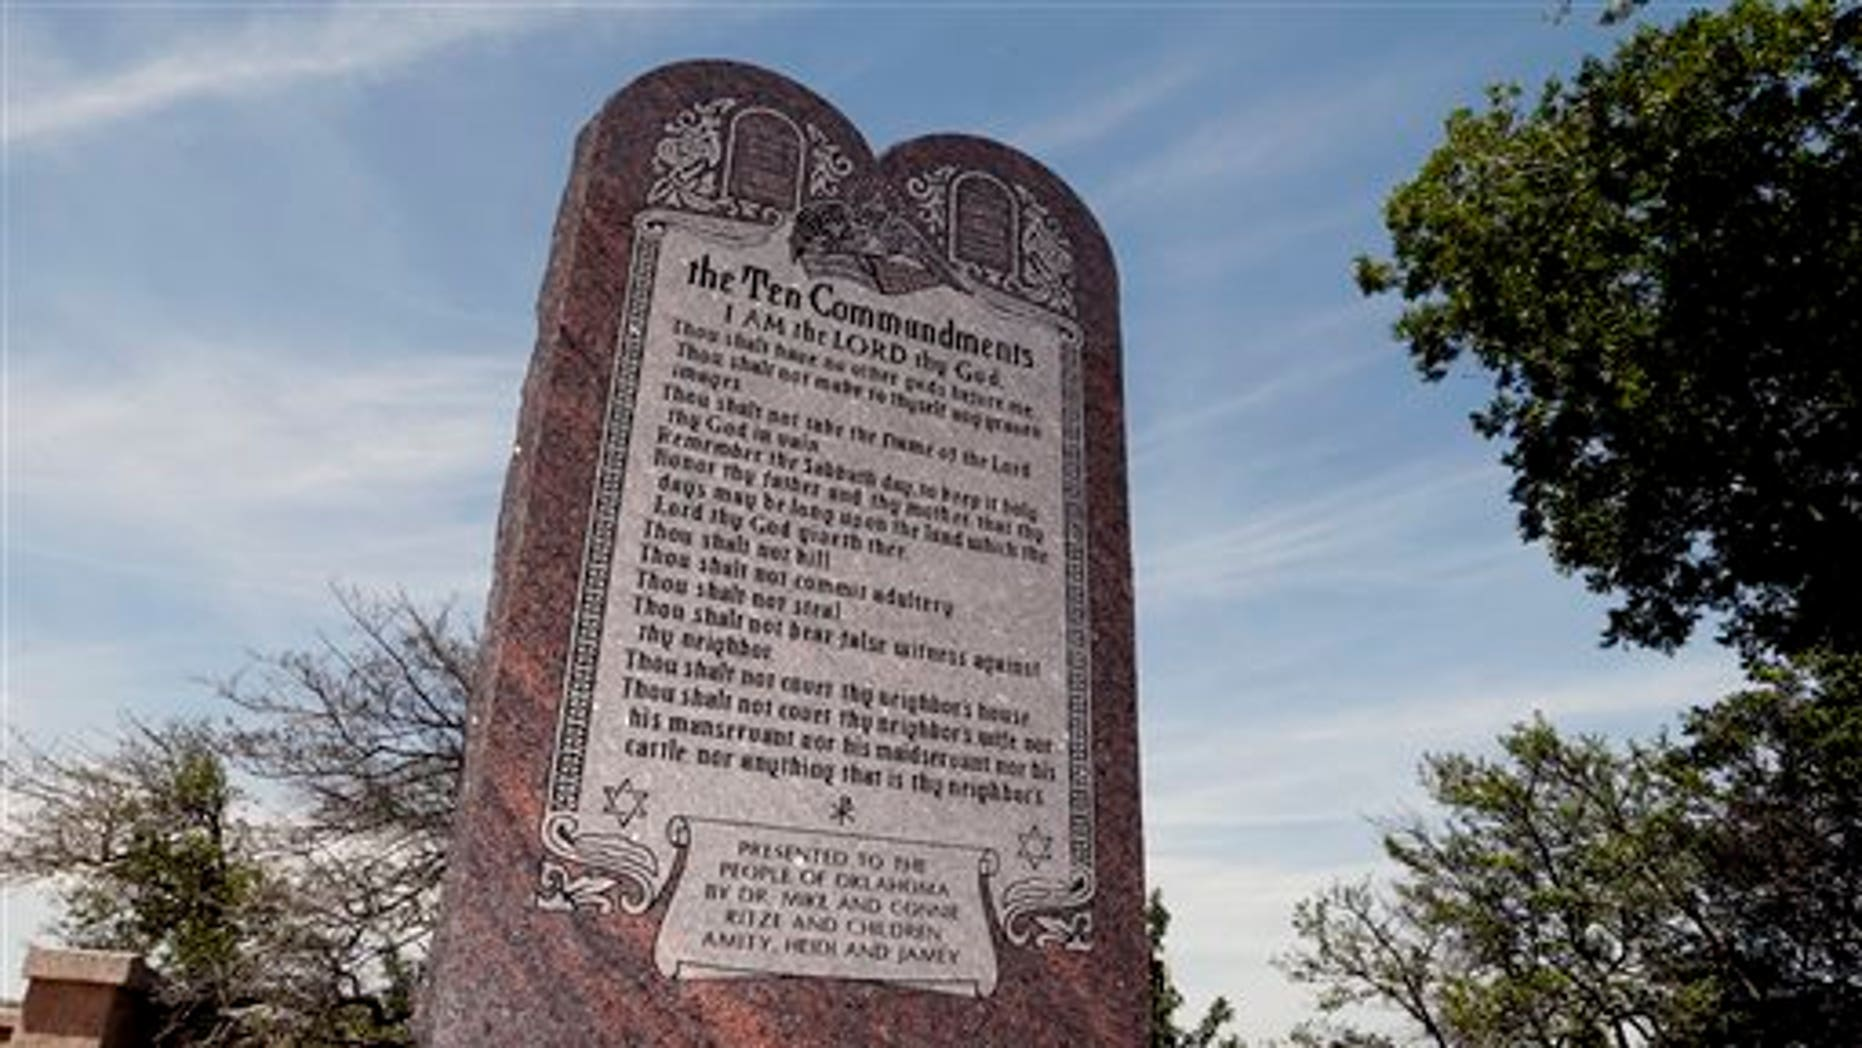 File - This June 20, 2014 file photo is the Ten Commandments monument at the state Capitol in Oklahoma City. The privately funded monument on the grounds of the Oklahoma Capitol does not violate the state constitution and can stay there, an Oklahoma County judge said Friday, Sept. 19, 2014 in a ruling that attorneys who filed the lawsuit in question vowed to appeal to the state Supreme Court. (AP Photo/Sue Ogrocki, File)